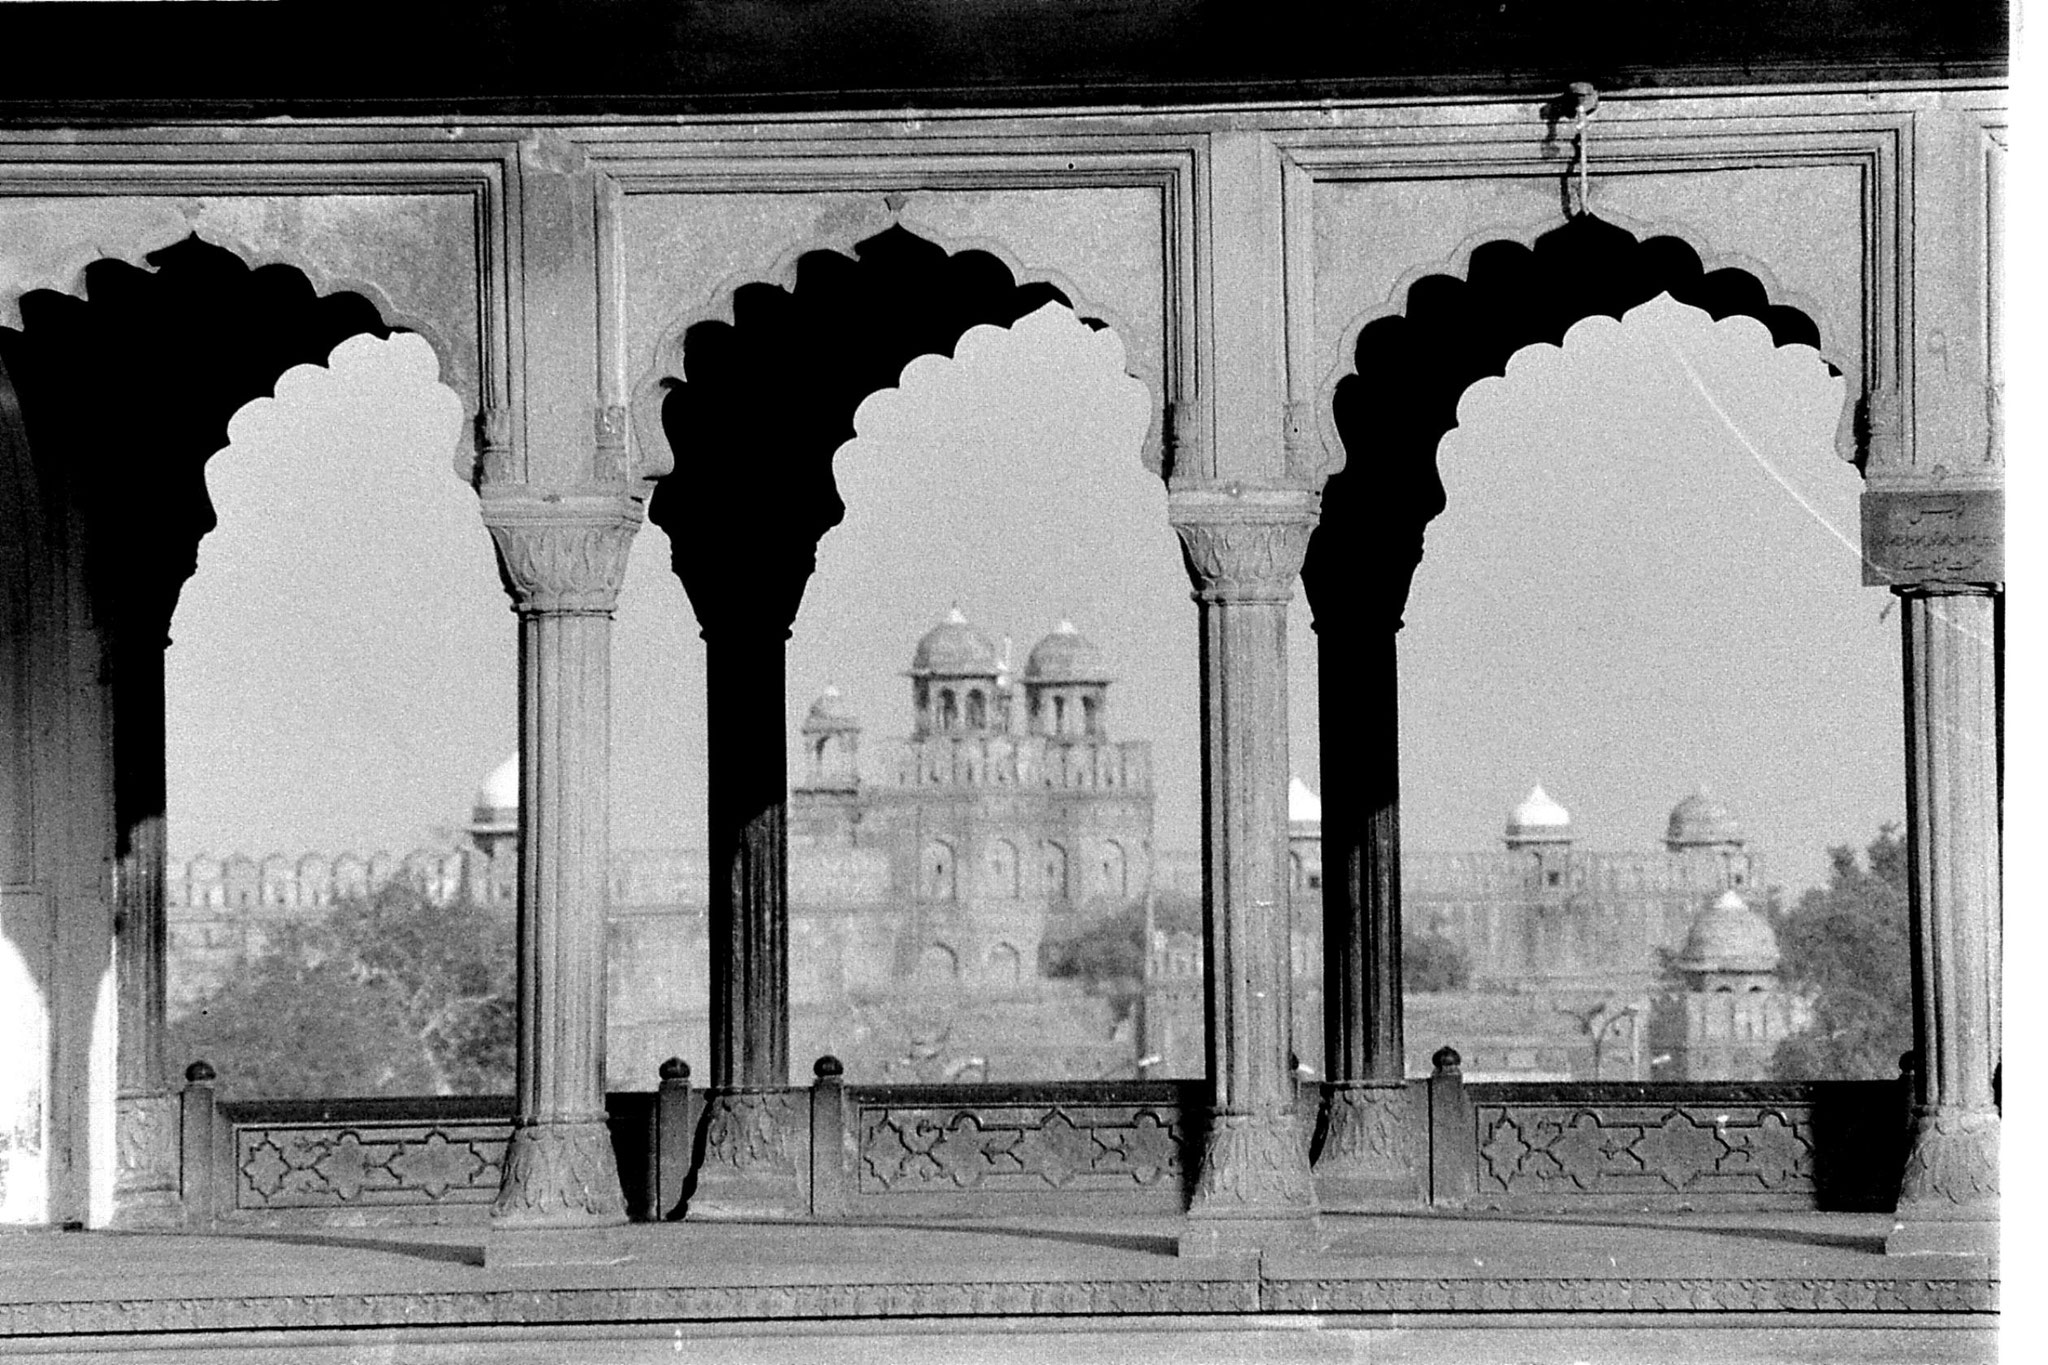 24/11/1989: 21: New Delhi view of Red Fort from Jami Masjid